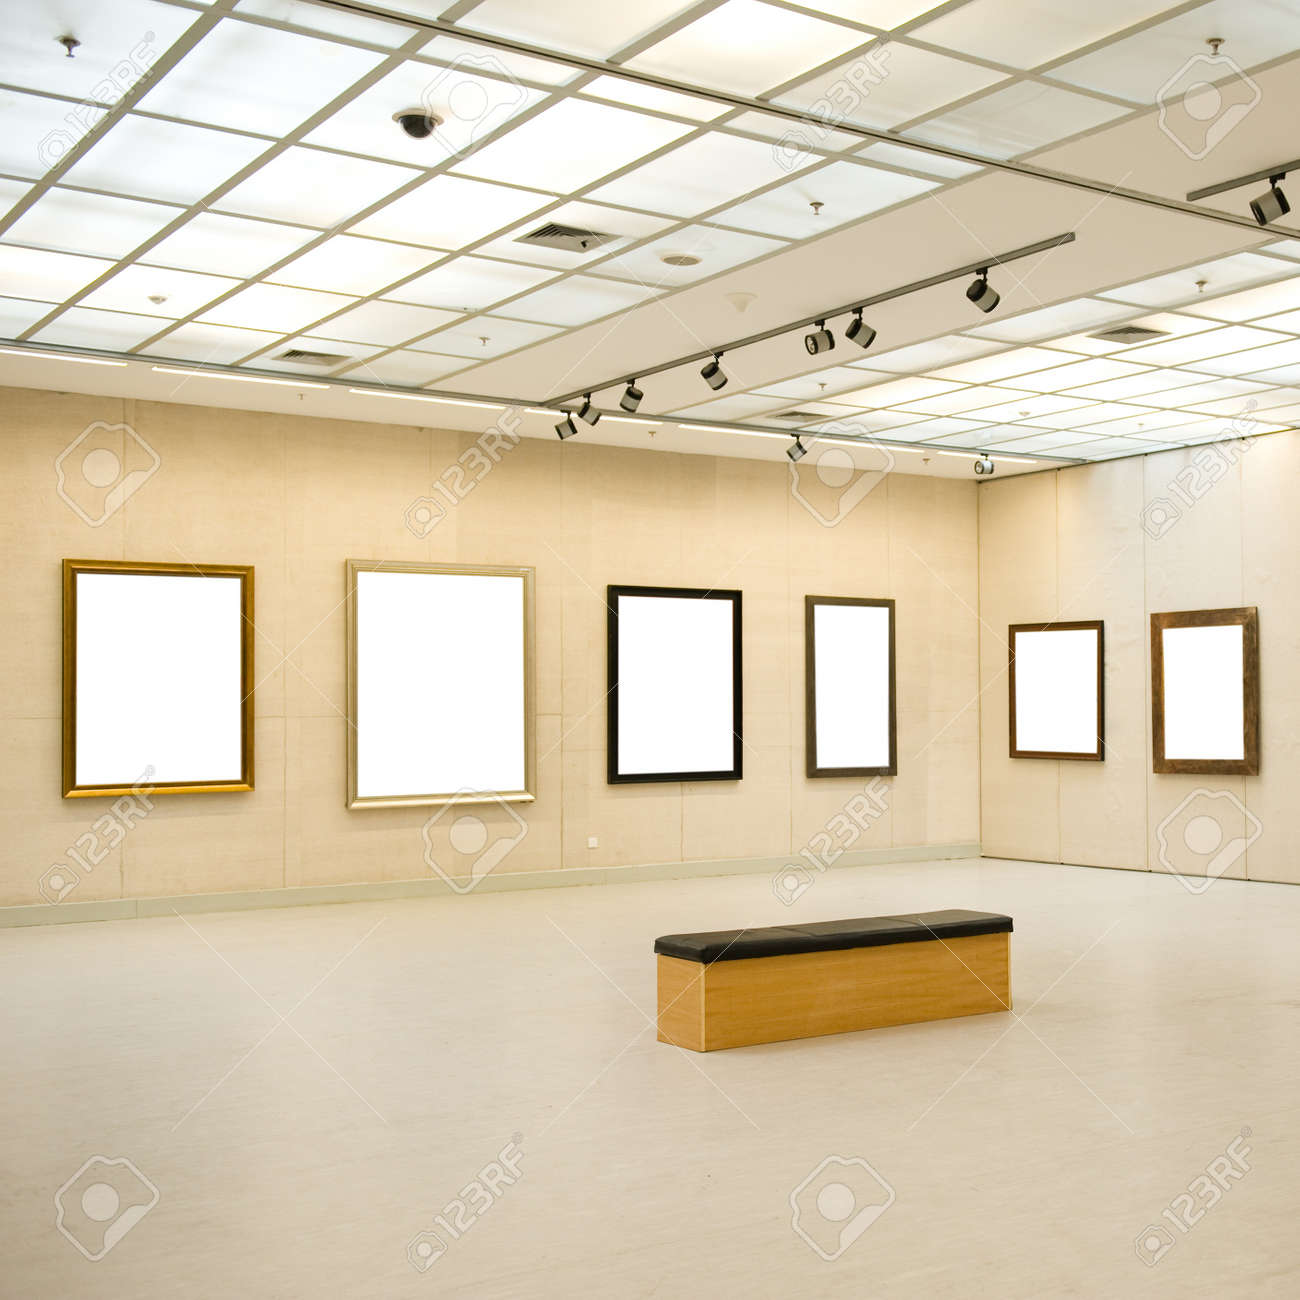 Gallery Interior with empty frame on wall  Stock Photo - 14142438